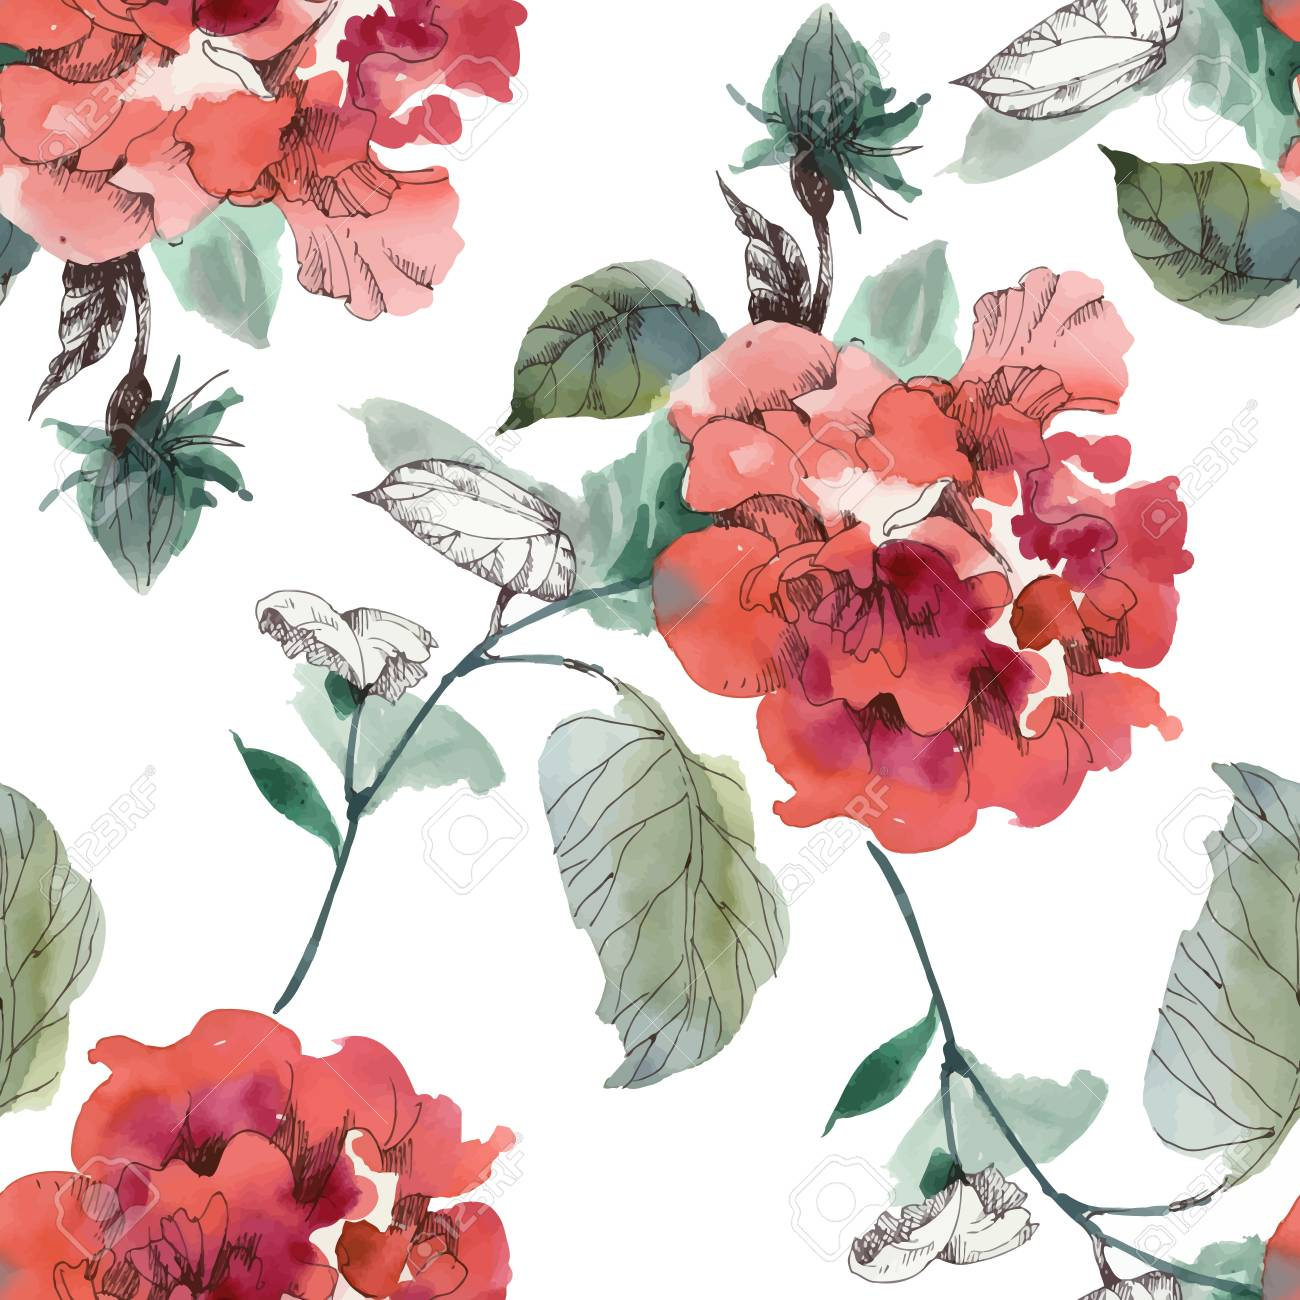 Watercolor Seamless Pattern With Colorful Flowers And Leaves